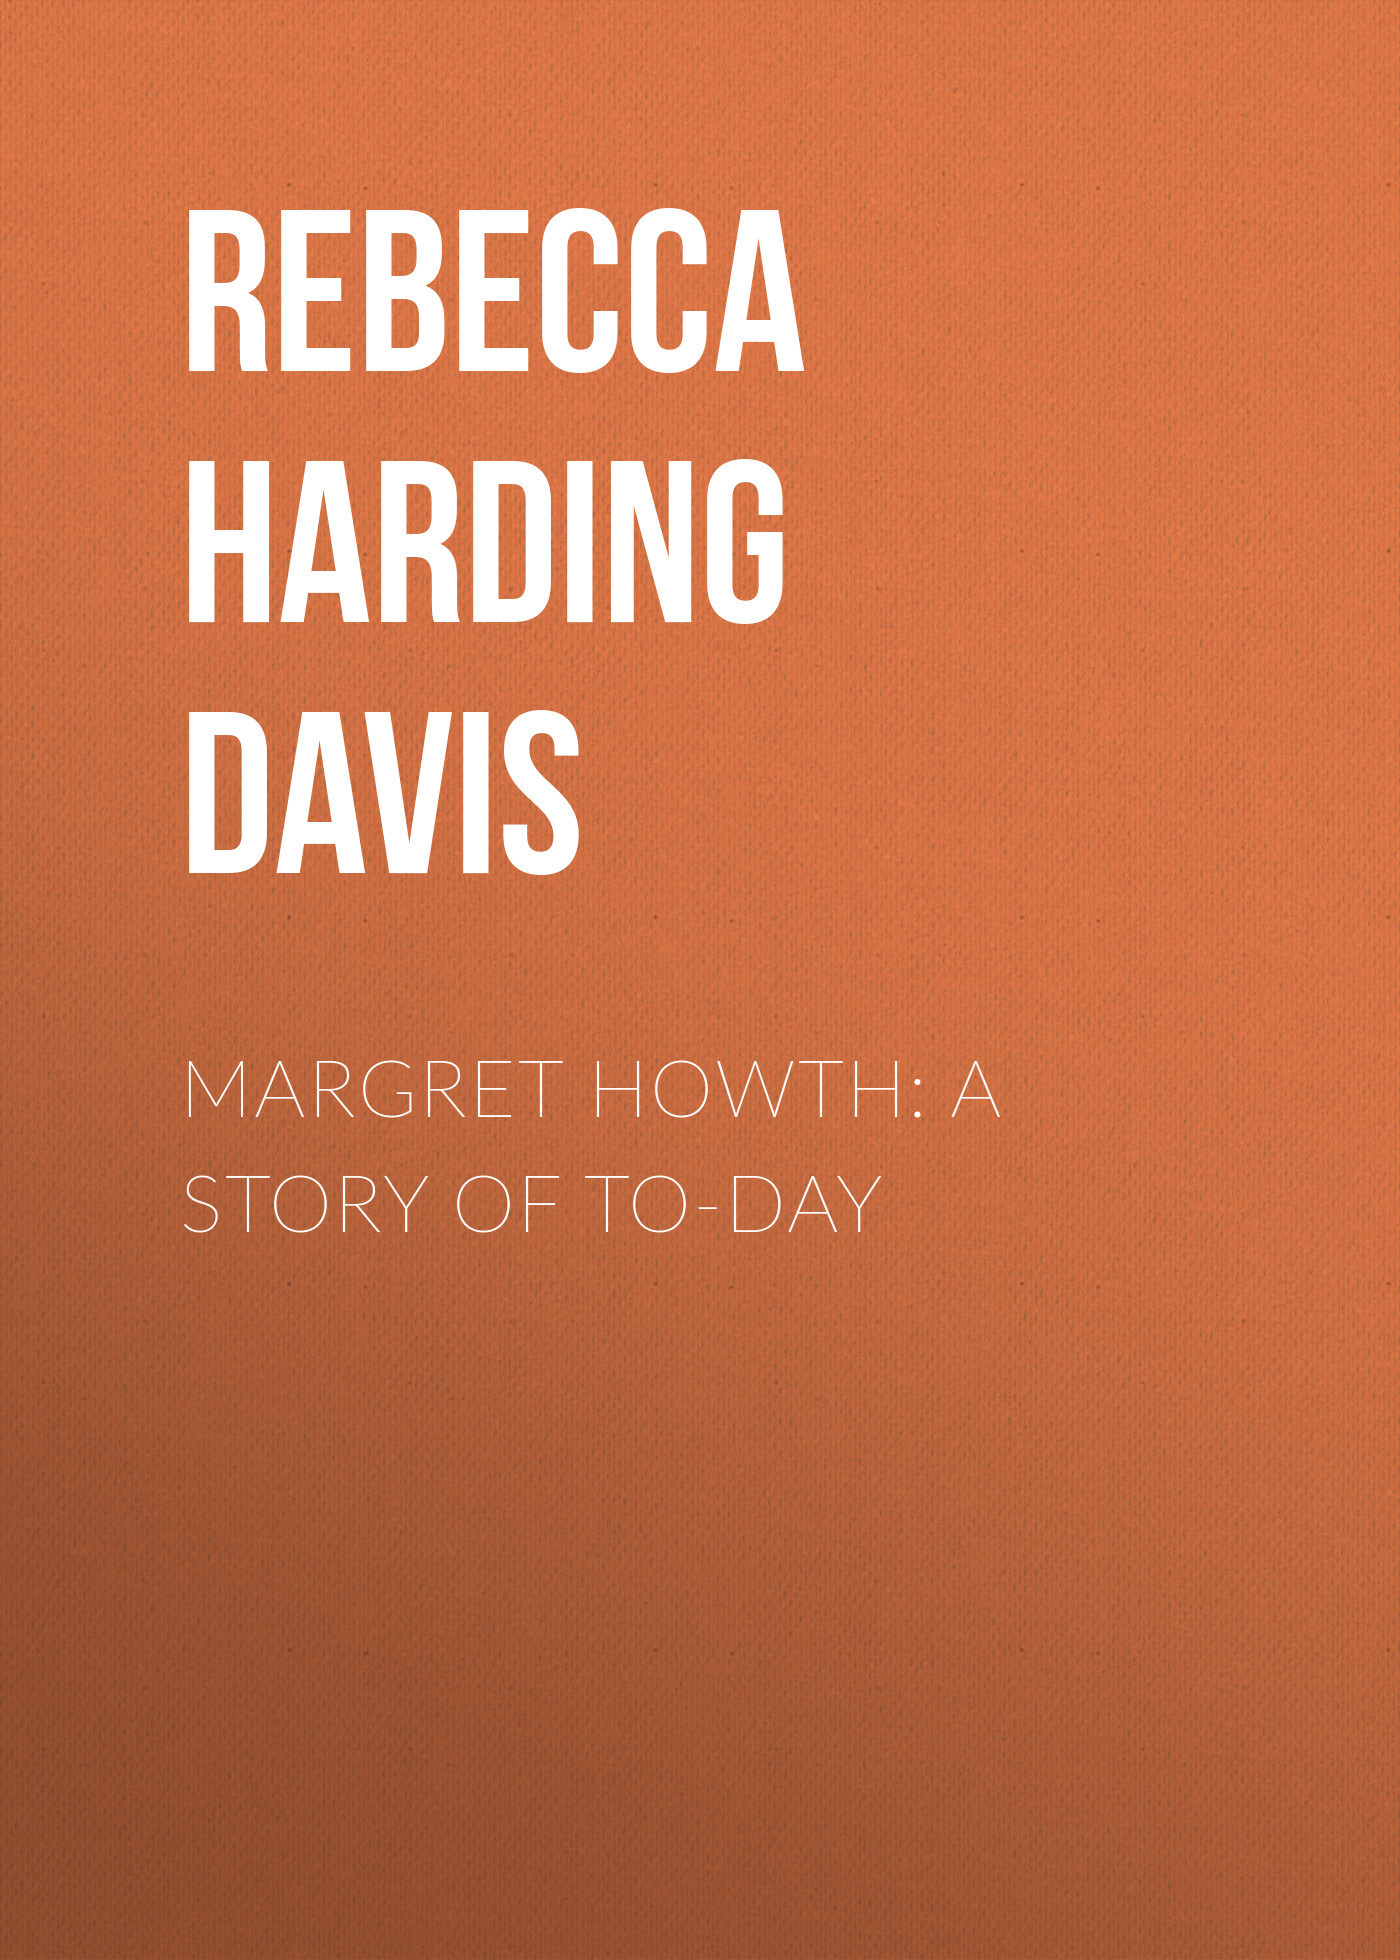 Rebecca Harding Davis Margret Howth: A Story of To-day пальто alix story alix story mp002xw13vur